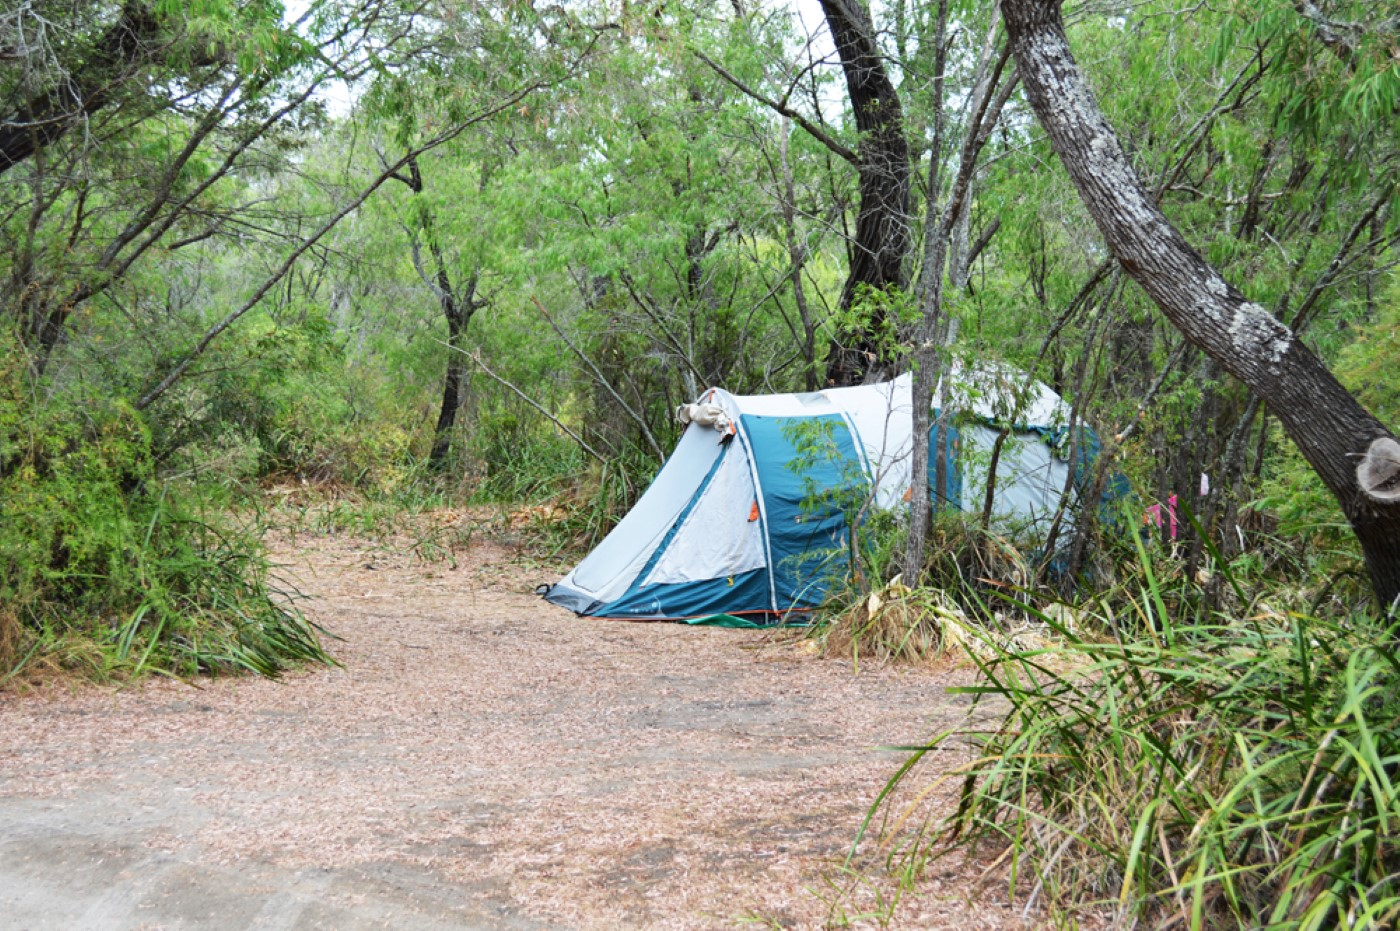 Camp among natural bushland